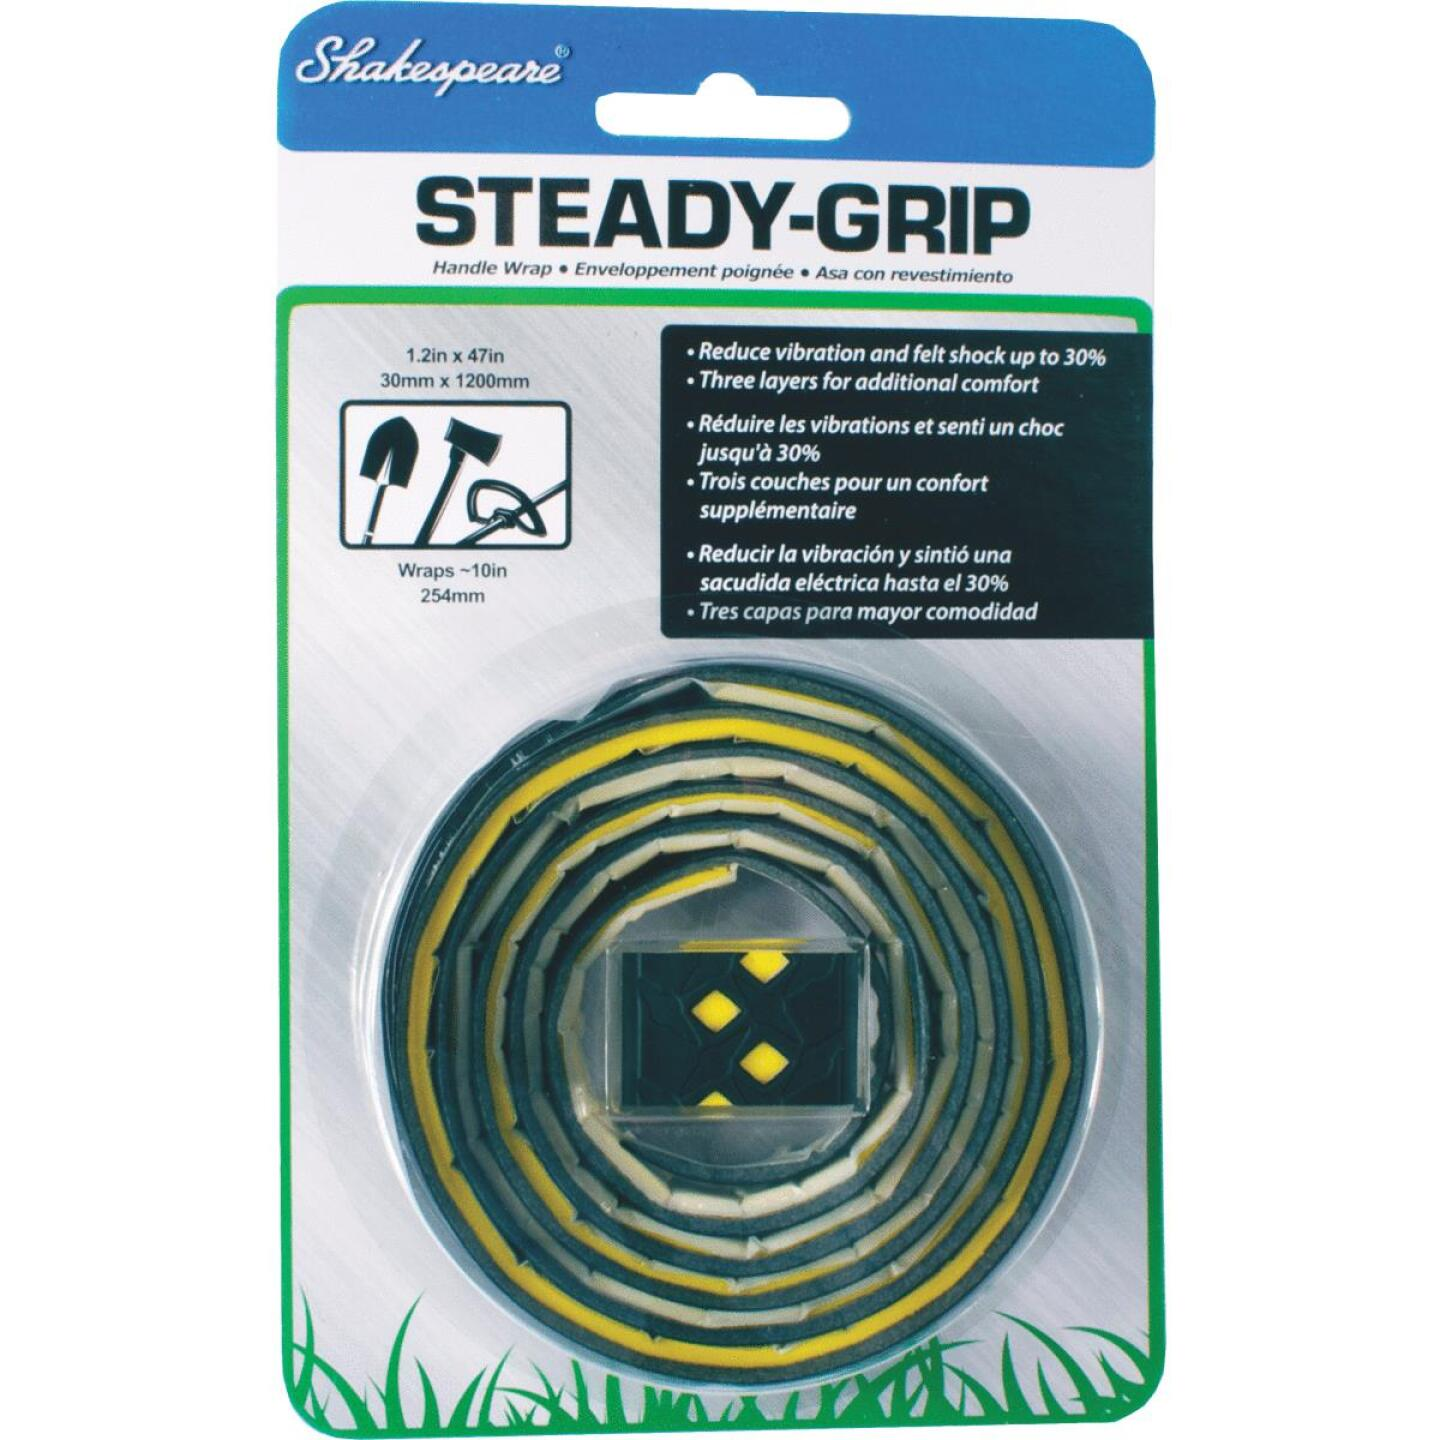 Shakespeare Steady Grip 47 In. Handle Wrap Image 1